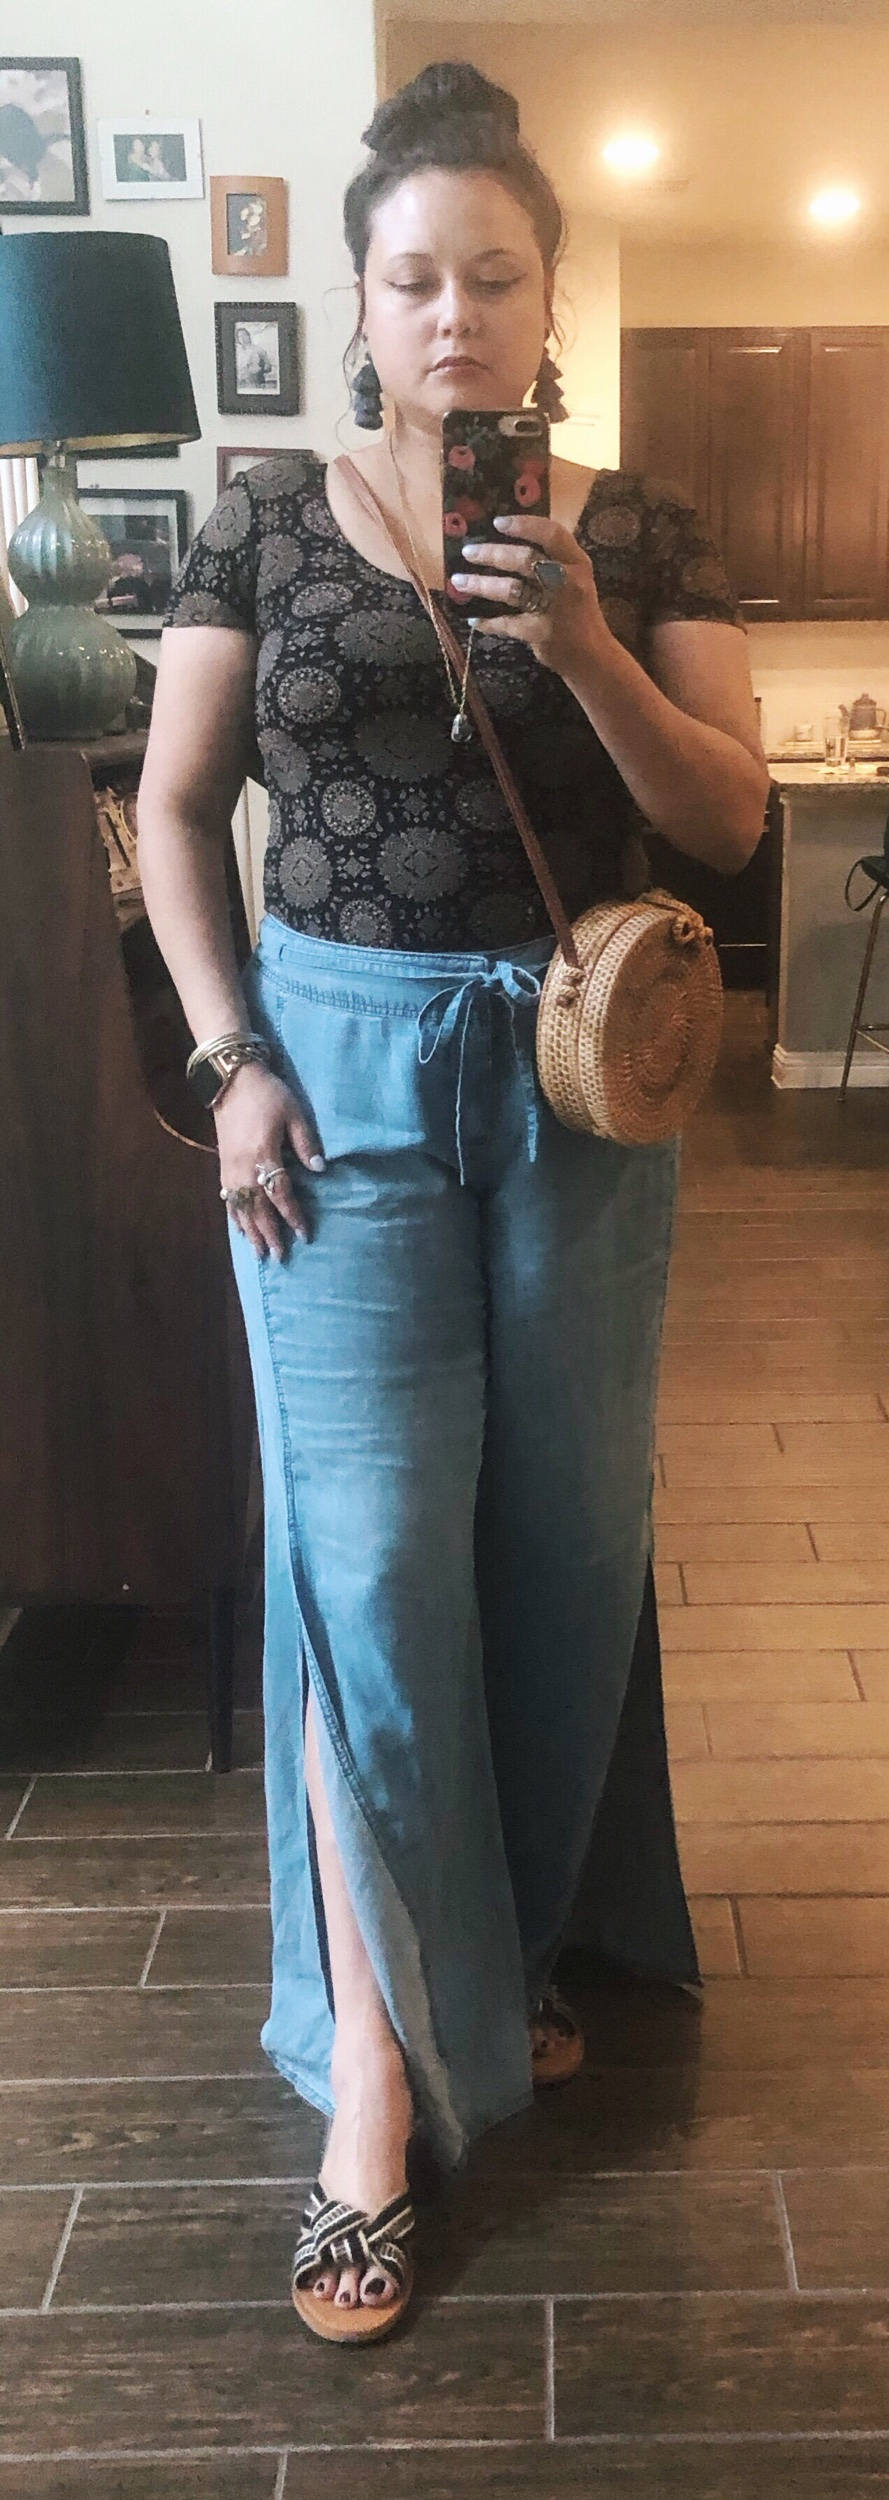 Outfit 3